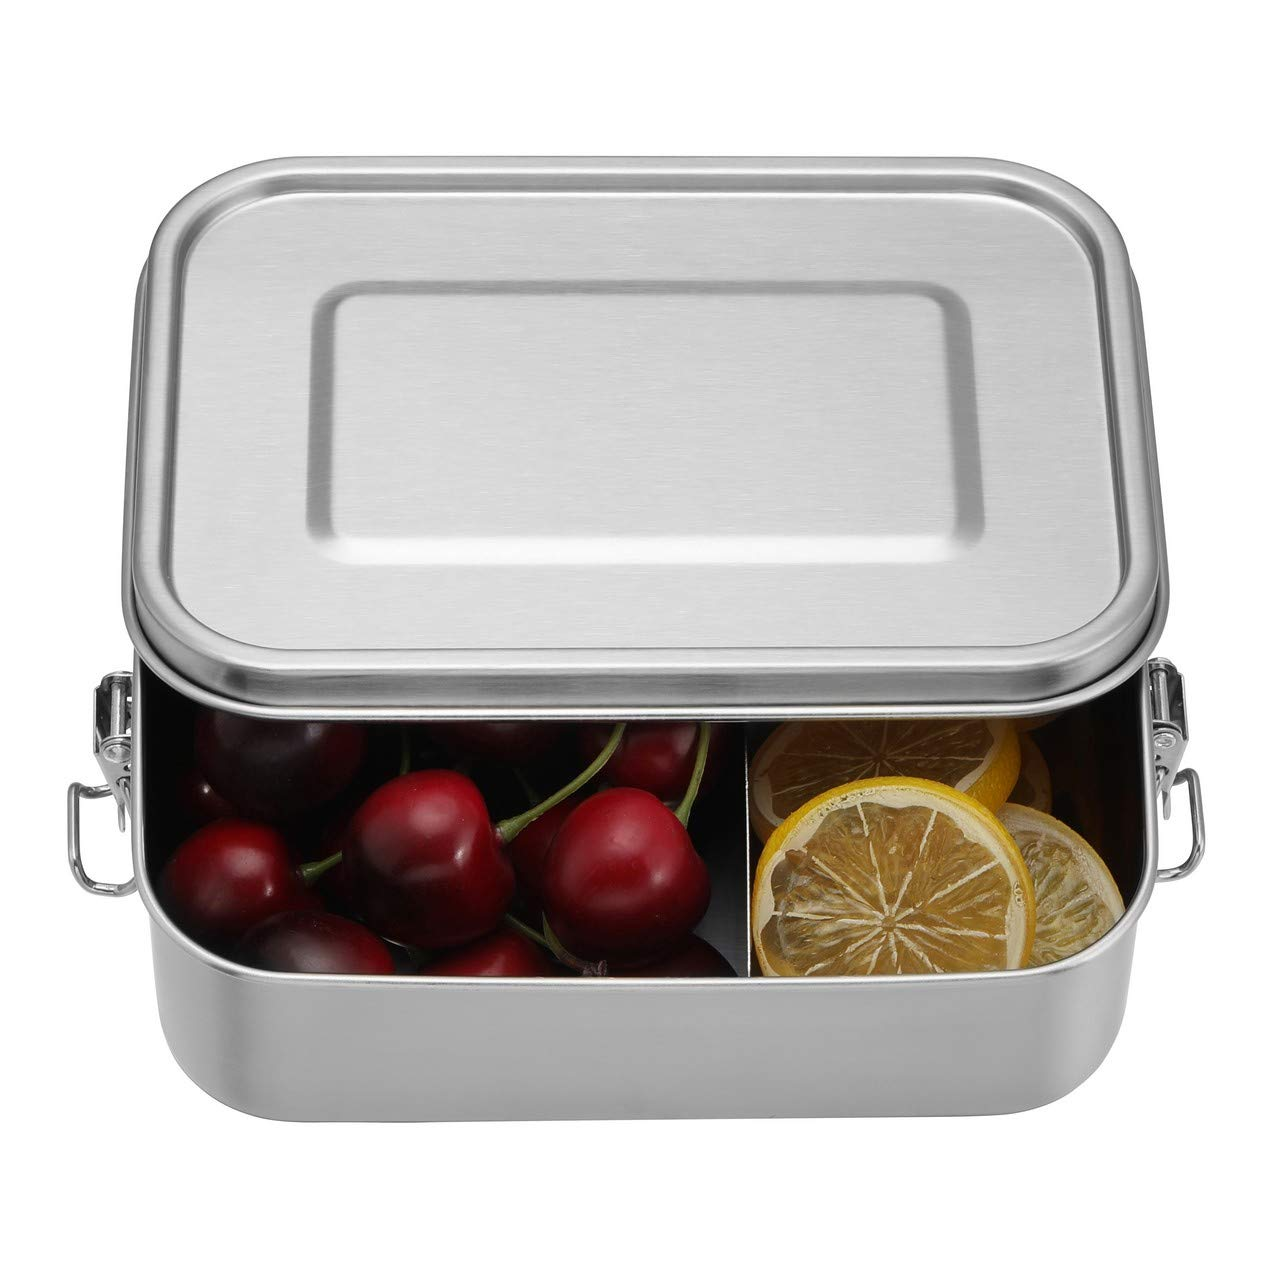 WarmHut Stainless Steel Lunch Container with Removable Compartment - Bento Lunch Box for Kids or Adults - Leak Proof Metal Food Storage Food Container(40OZ/1200ML)